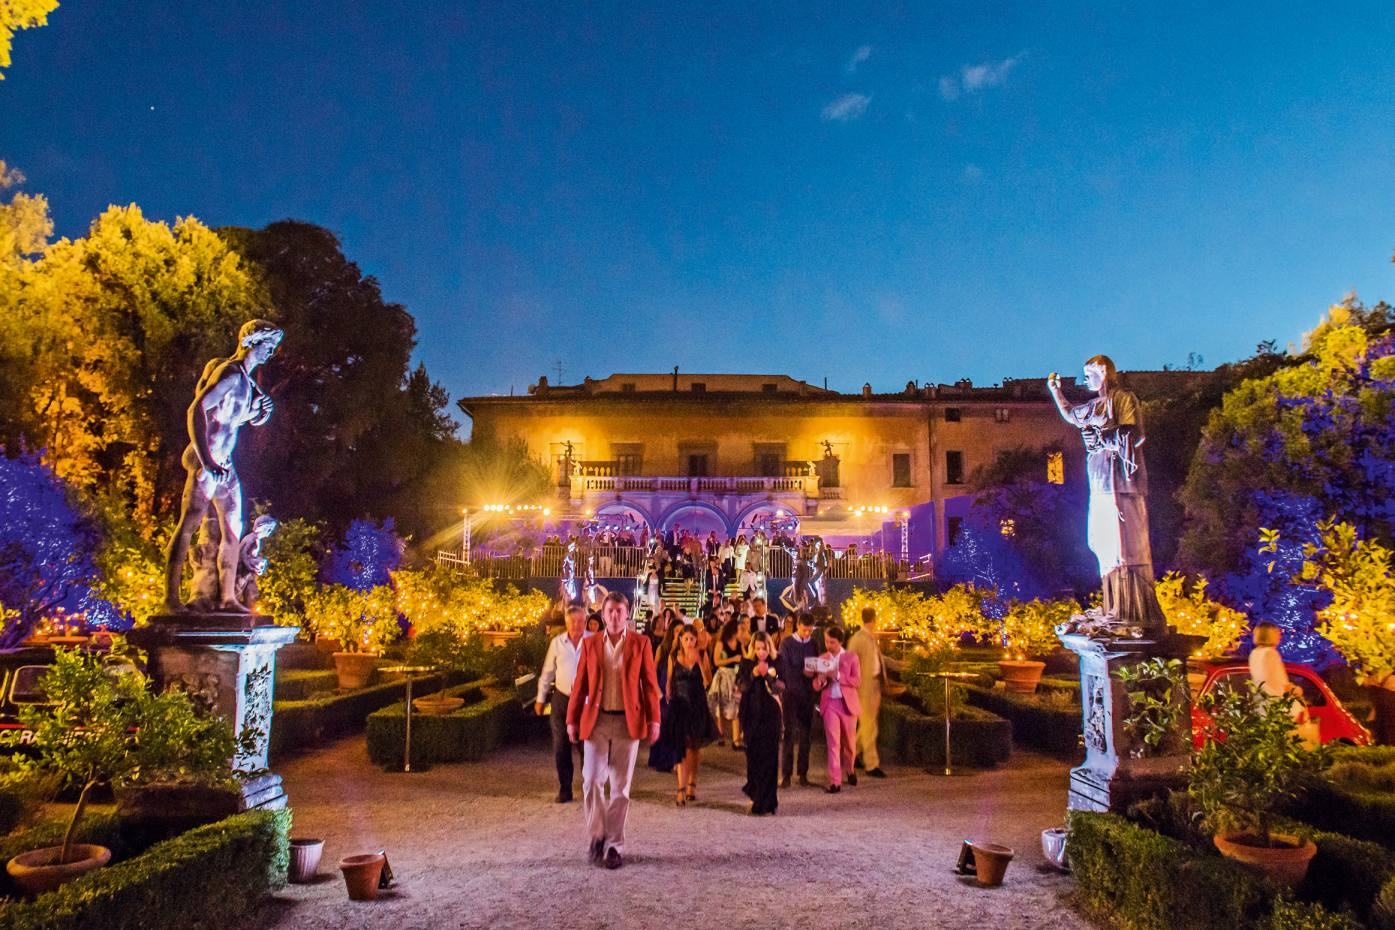 The New Generation Festival, now in its second year, takes place in the gardens of Palazzo Corsini al Prato, Florence